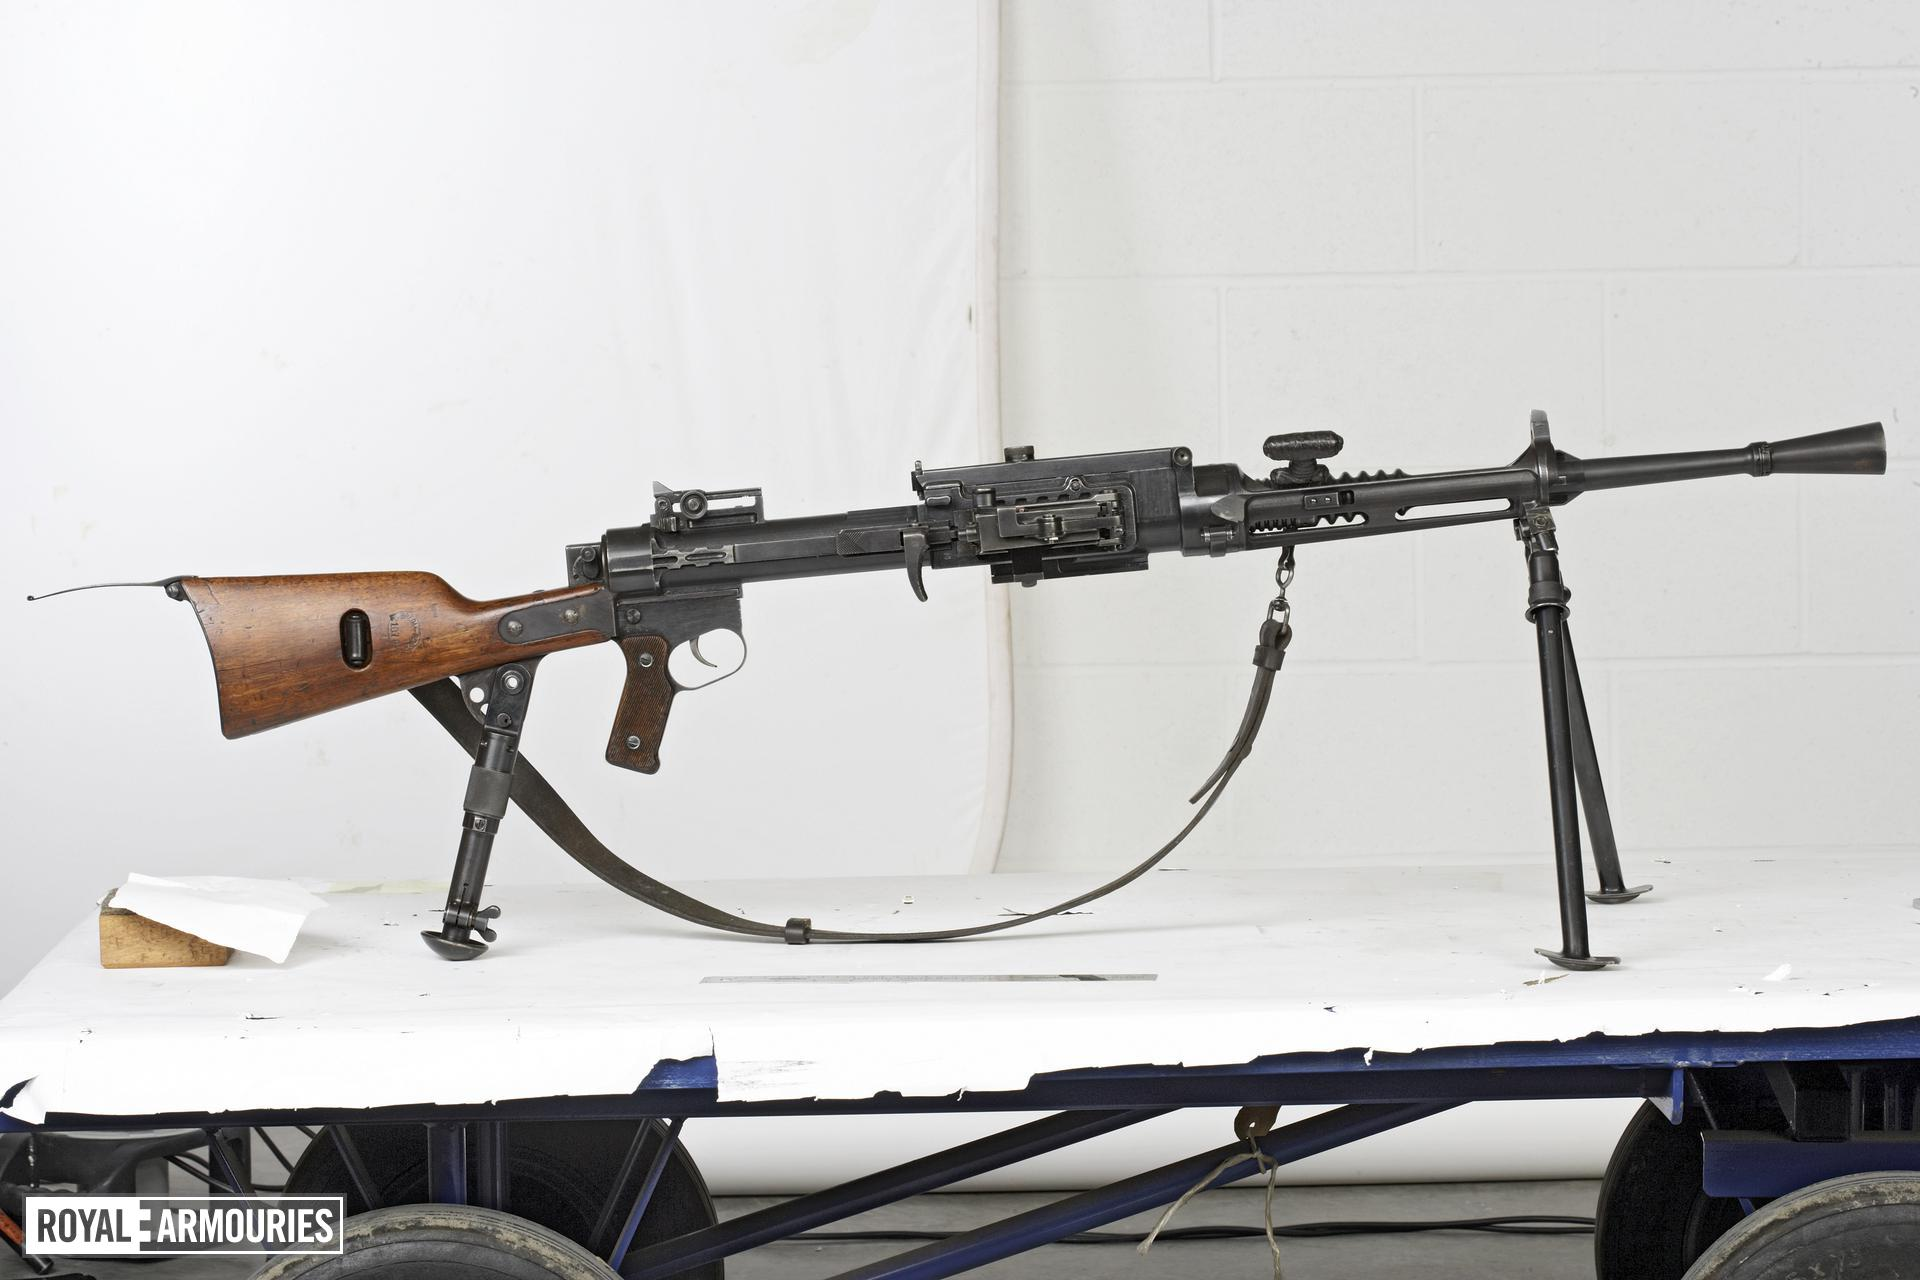 Centrefire automatic light machine gun - Breda Model 30